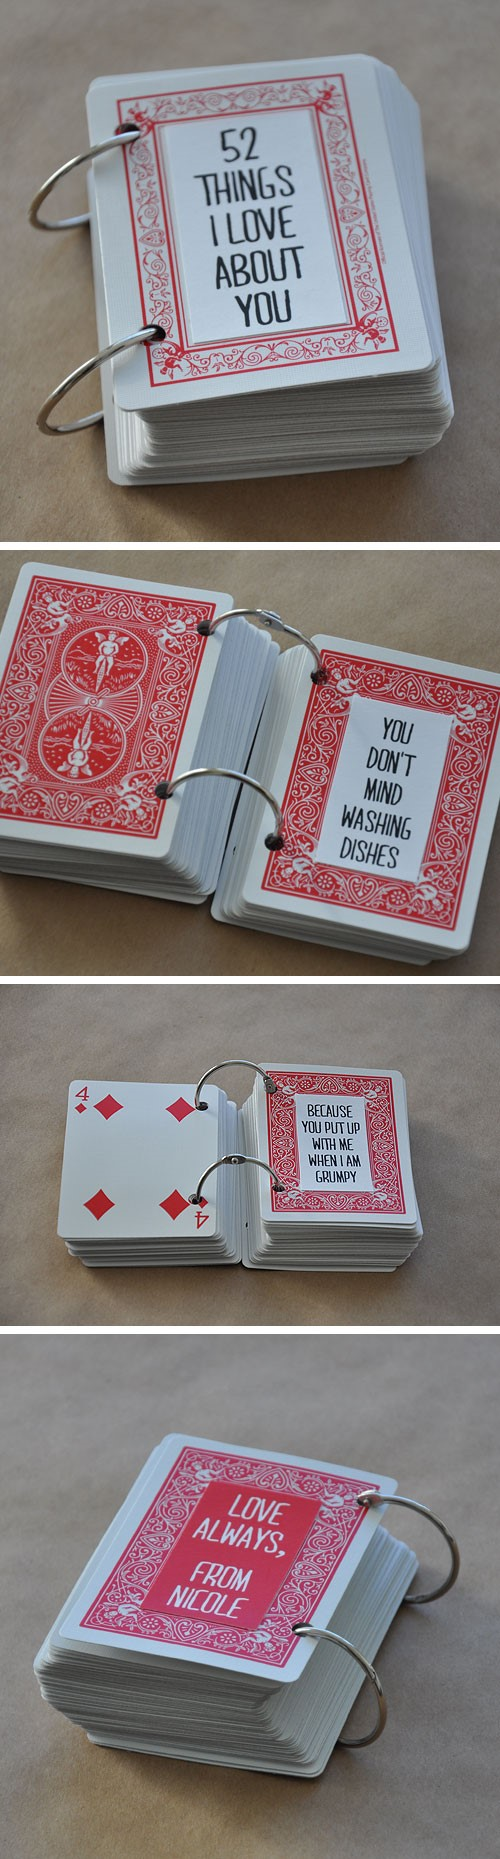 52-things-i-love-about-you-deck